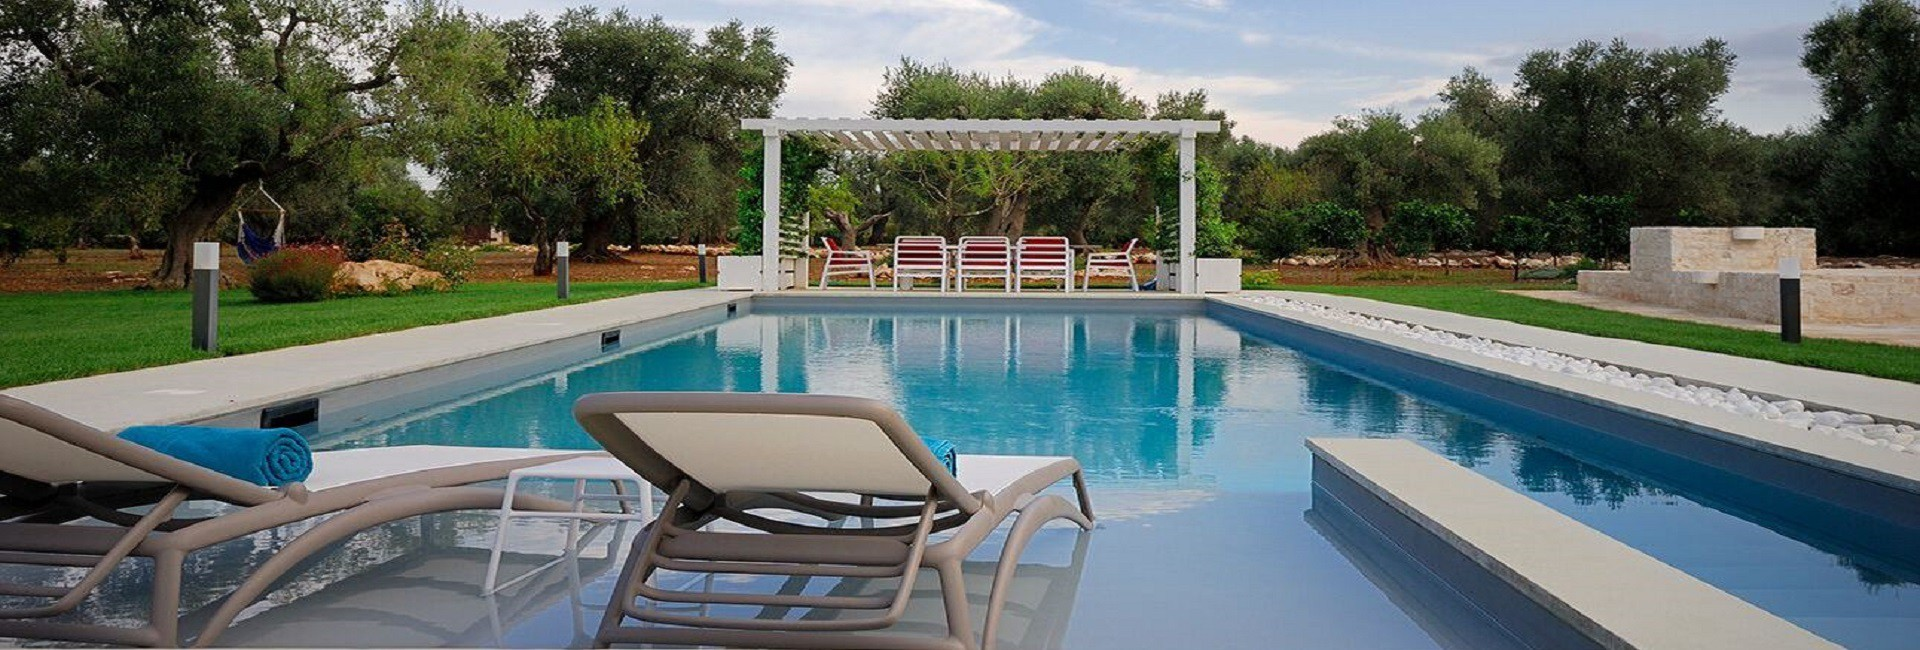 Villa with trullo and swimming pool to seasonal rent